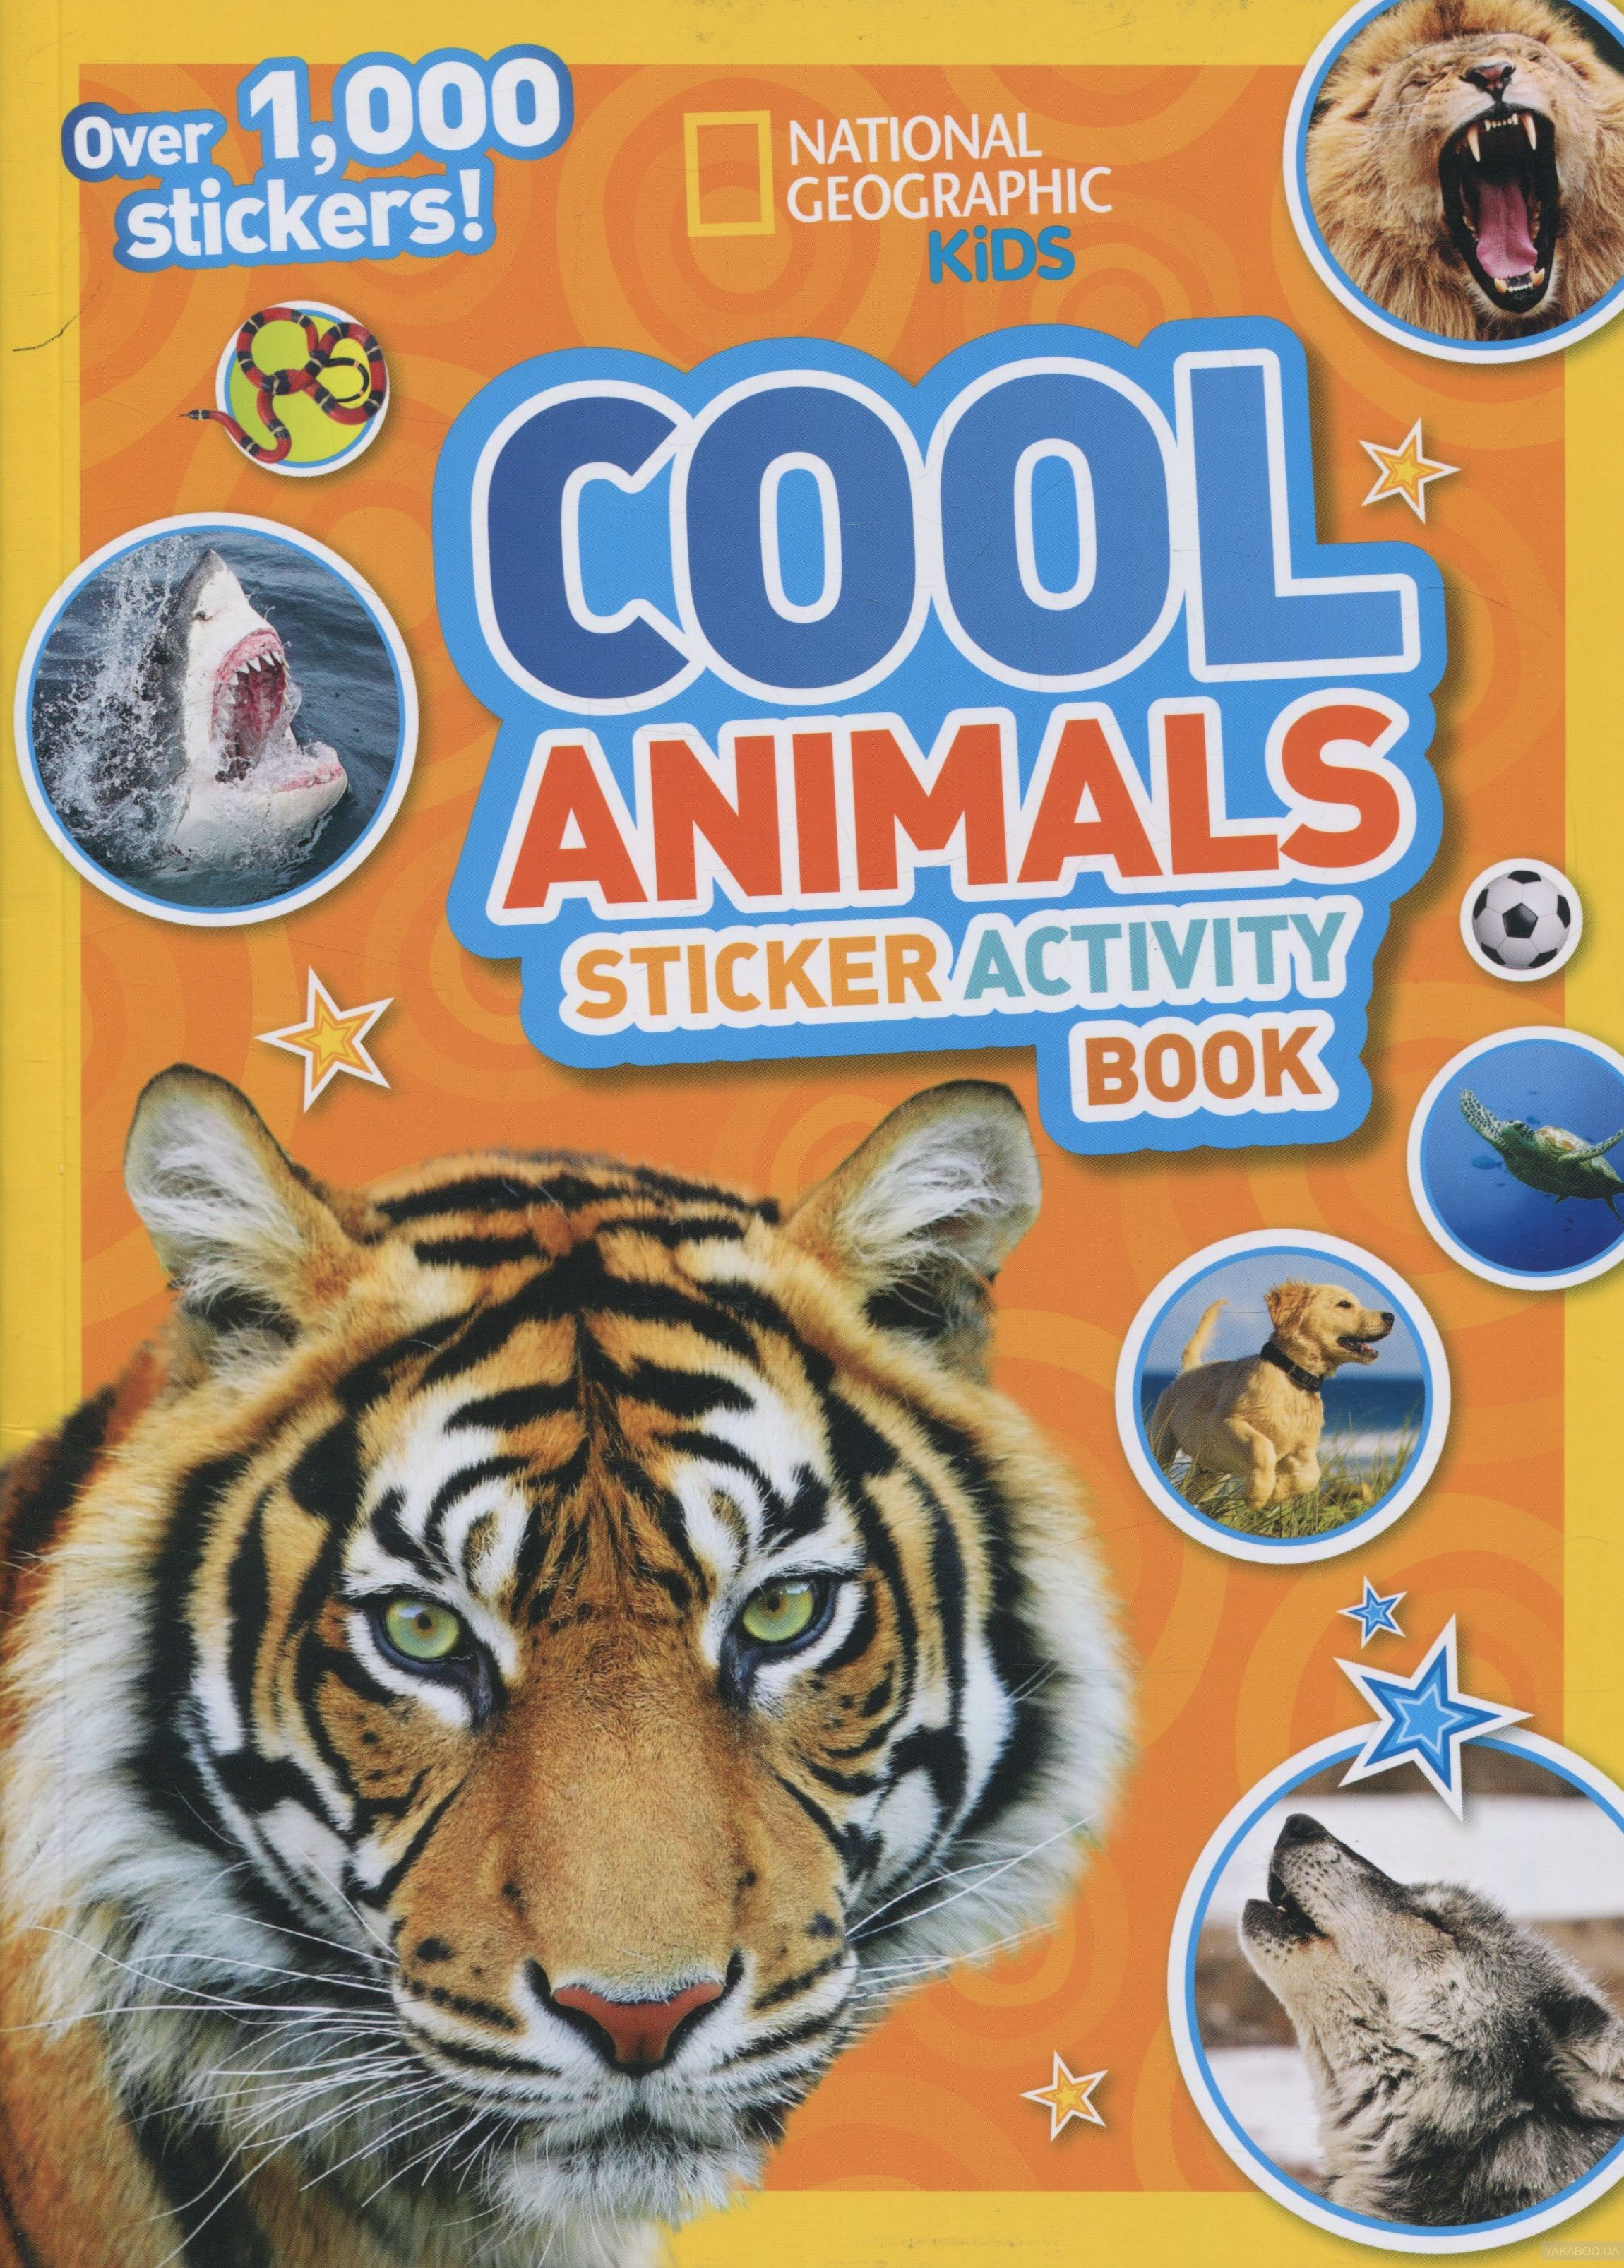 Cool Animals. Sticker Activity Book